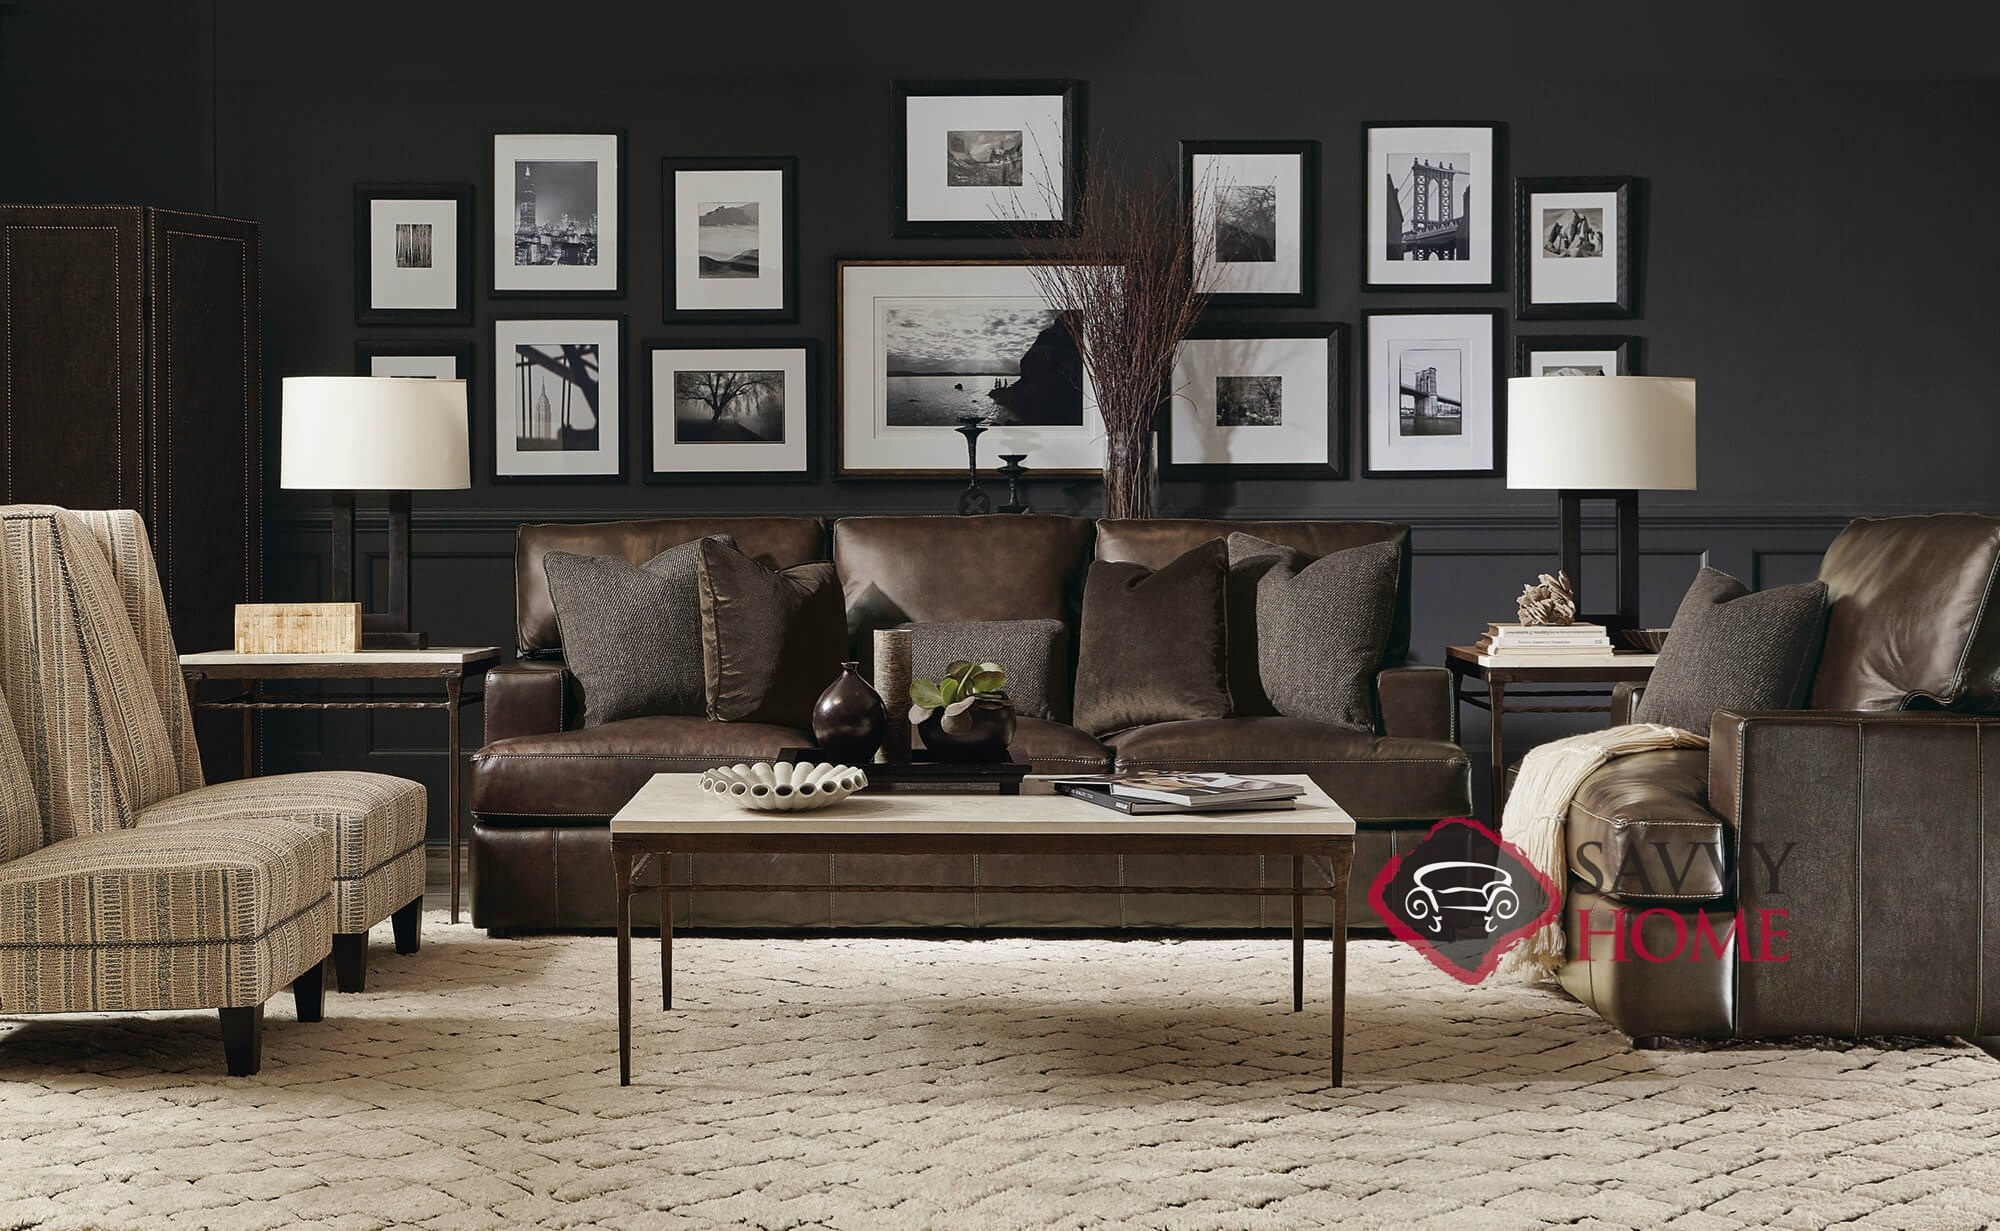 Terrific Quick Ship Winslow By Bernhardt Leather Stationary Sofa In By Bernhardt With Fast Shipping Savvyhomestore Com Gmtry Best Dining Table And Chair Ideas Images Gmtryco